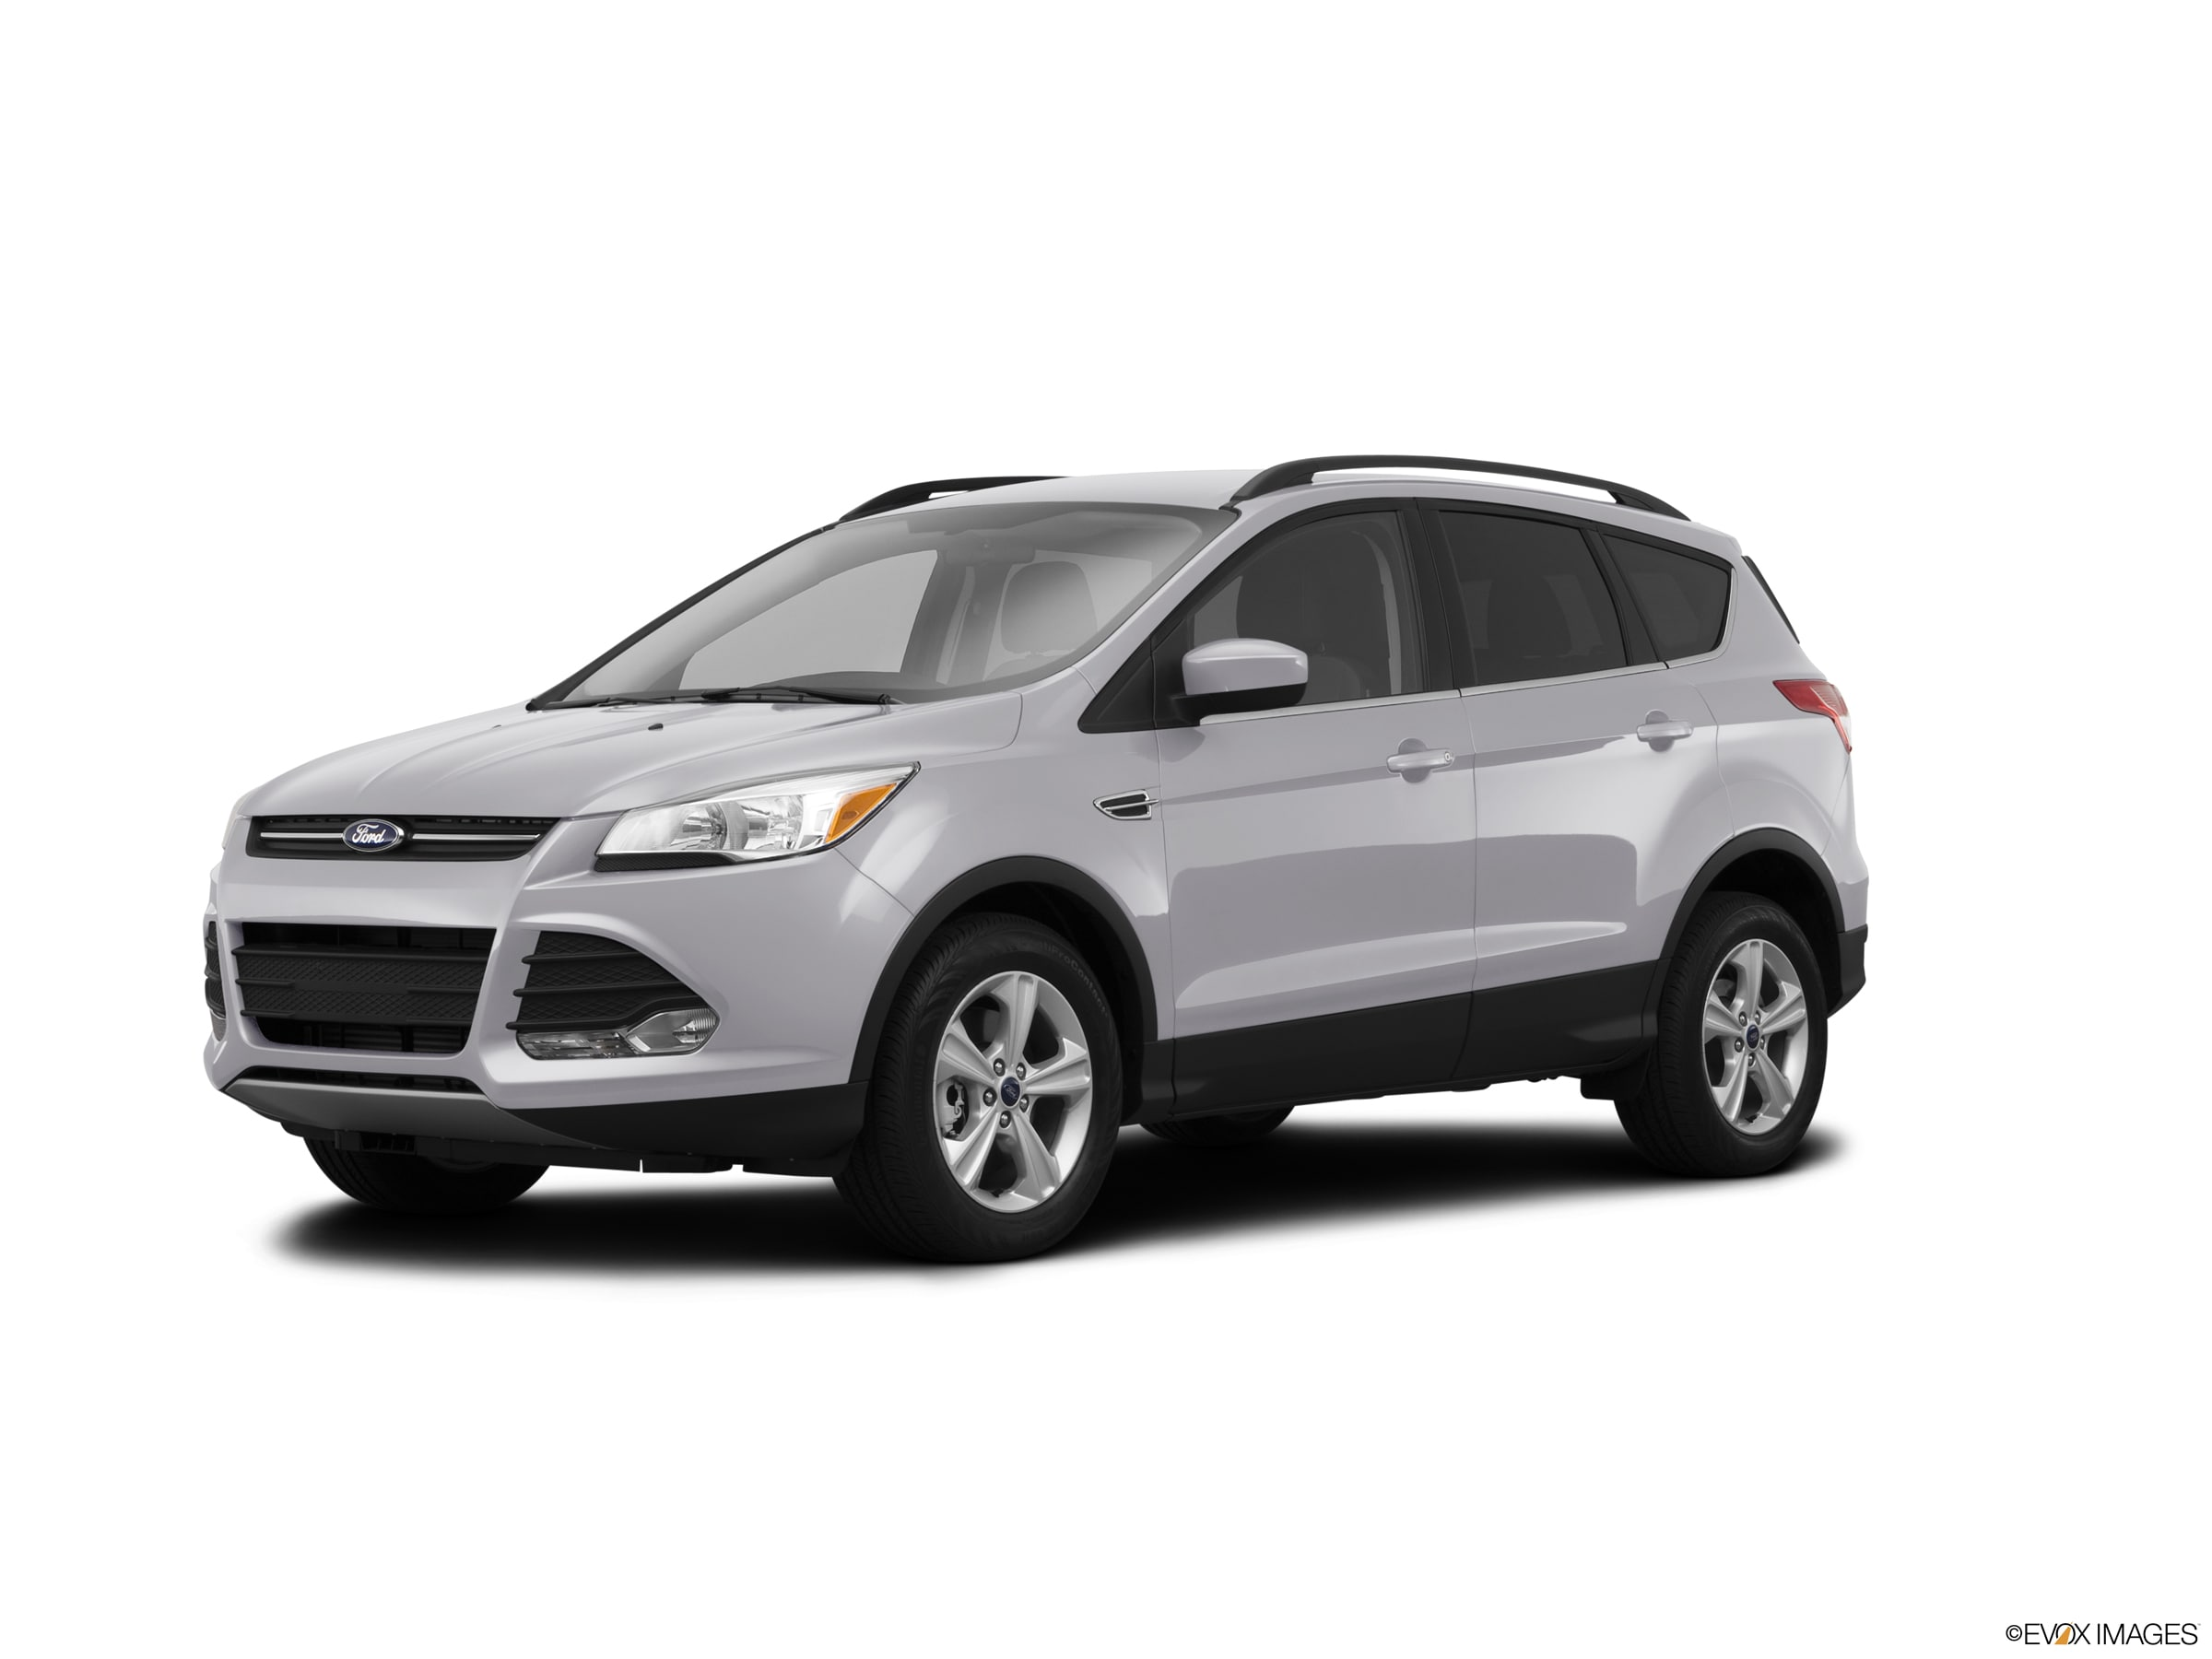 used 2014 ford escape for sale at ray price volvo cars vin 1fmcu9g99euc34112 ray price volvo